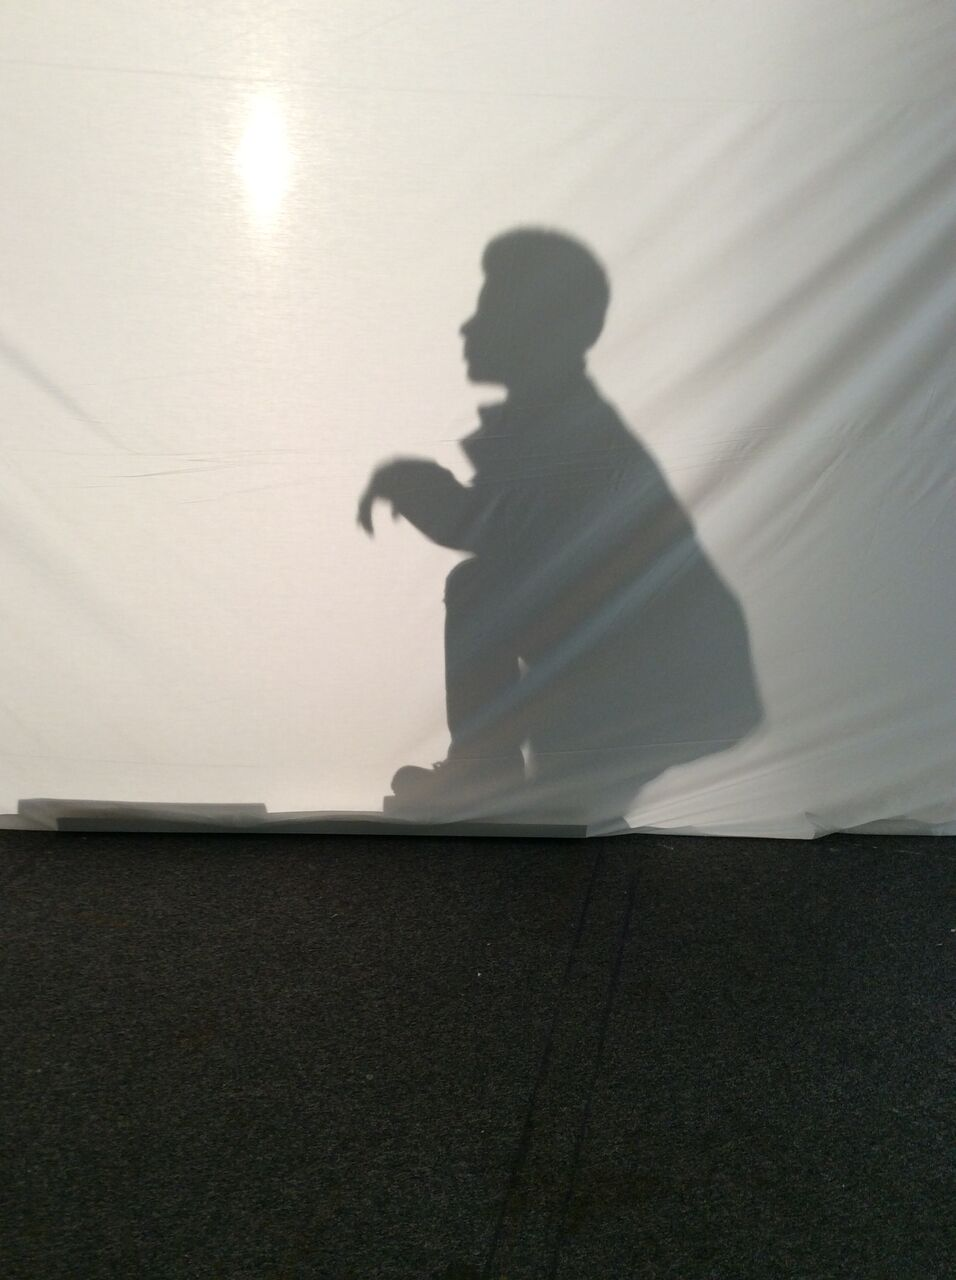 Finesse's silhouette